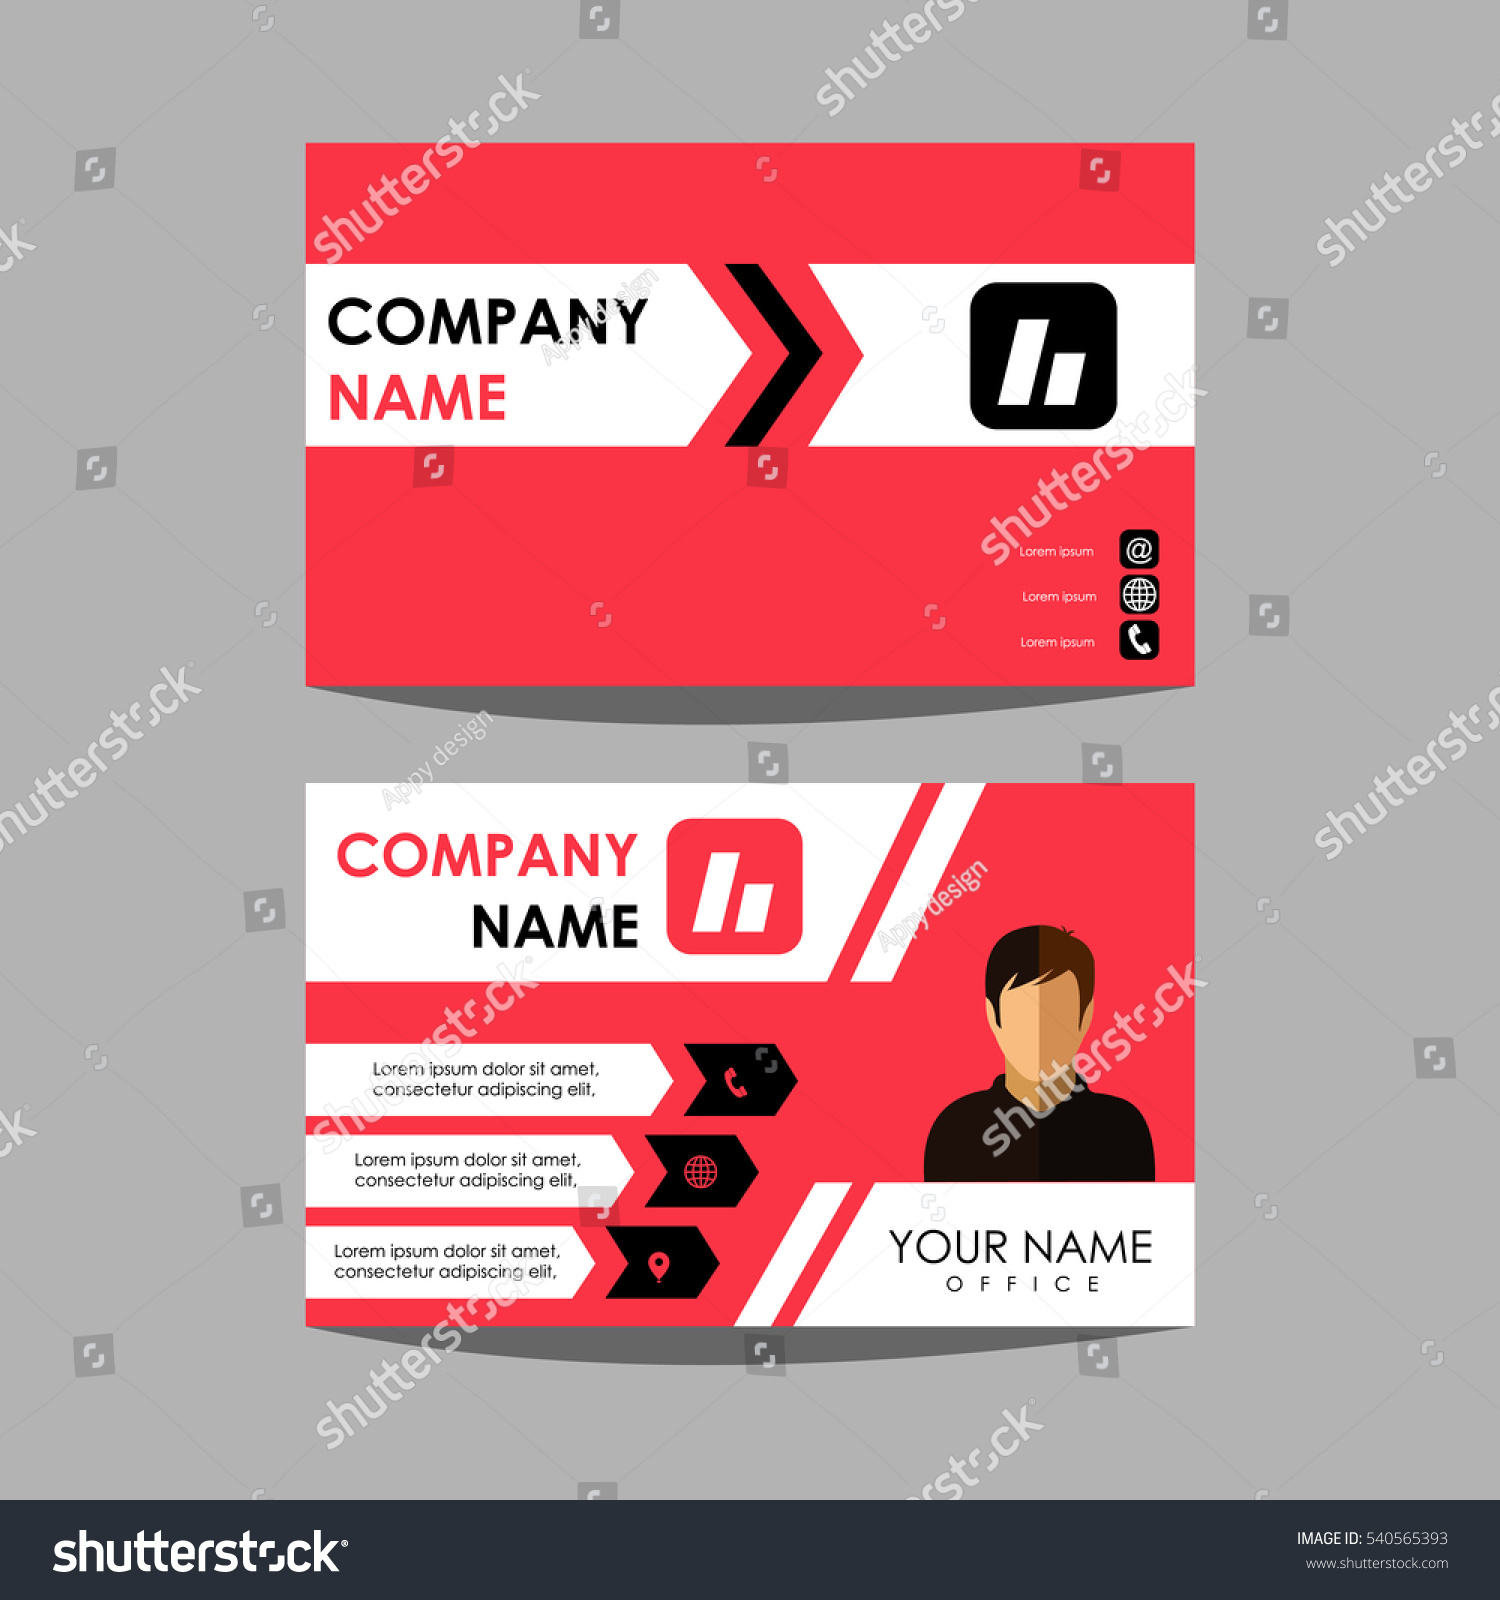 Layout Design Template Id Card Business Stock Vector 540565393 ...